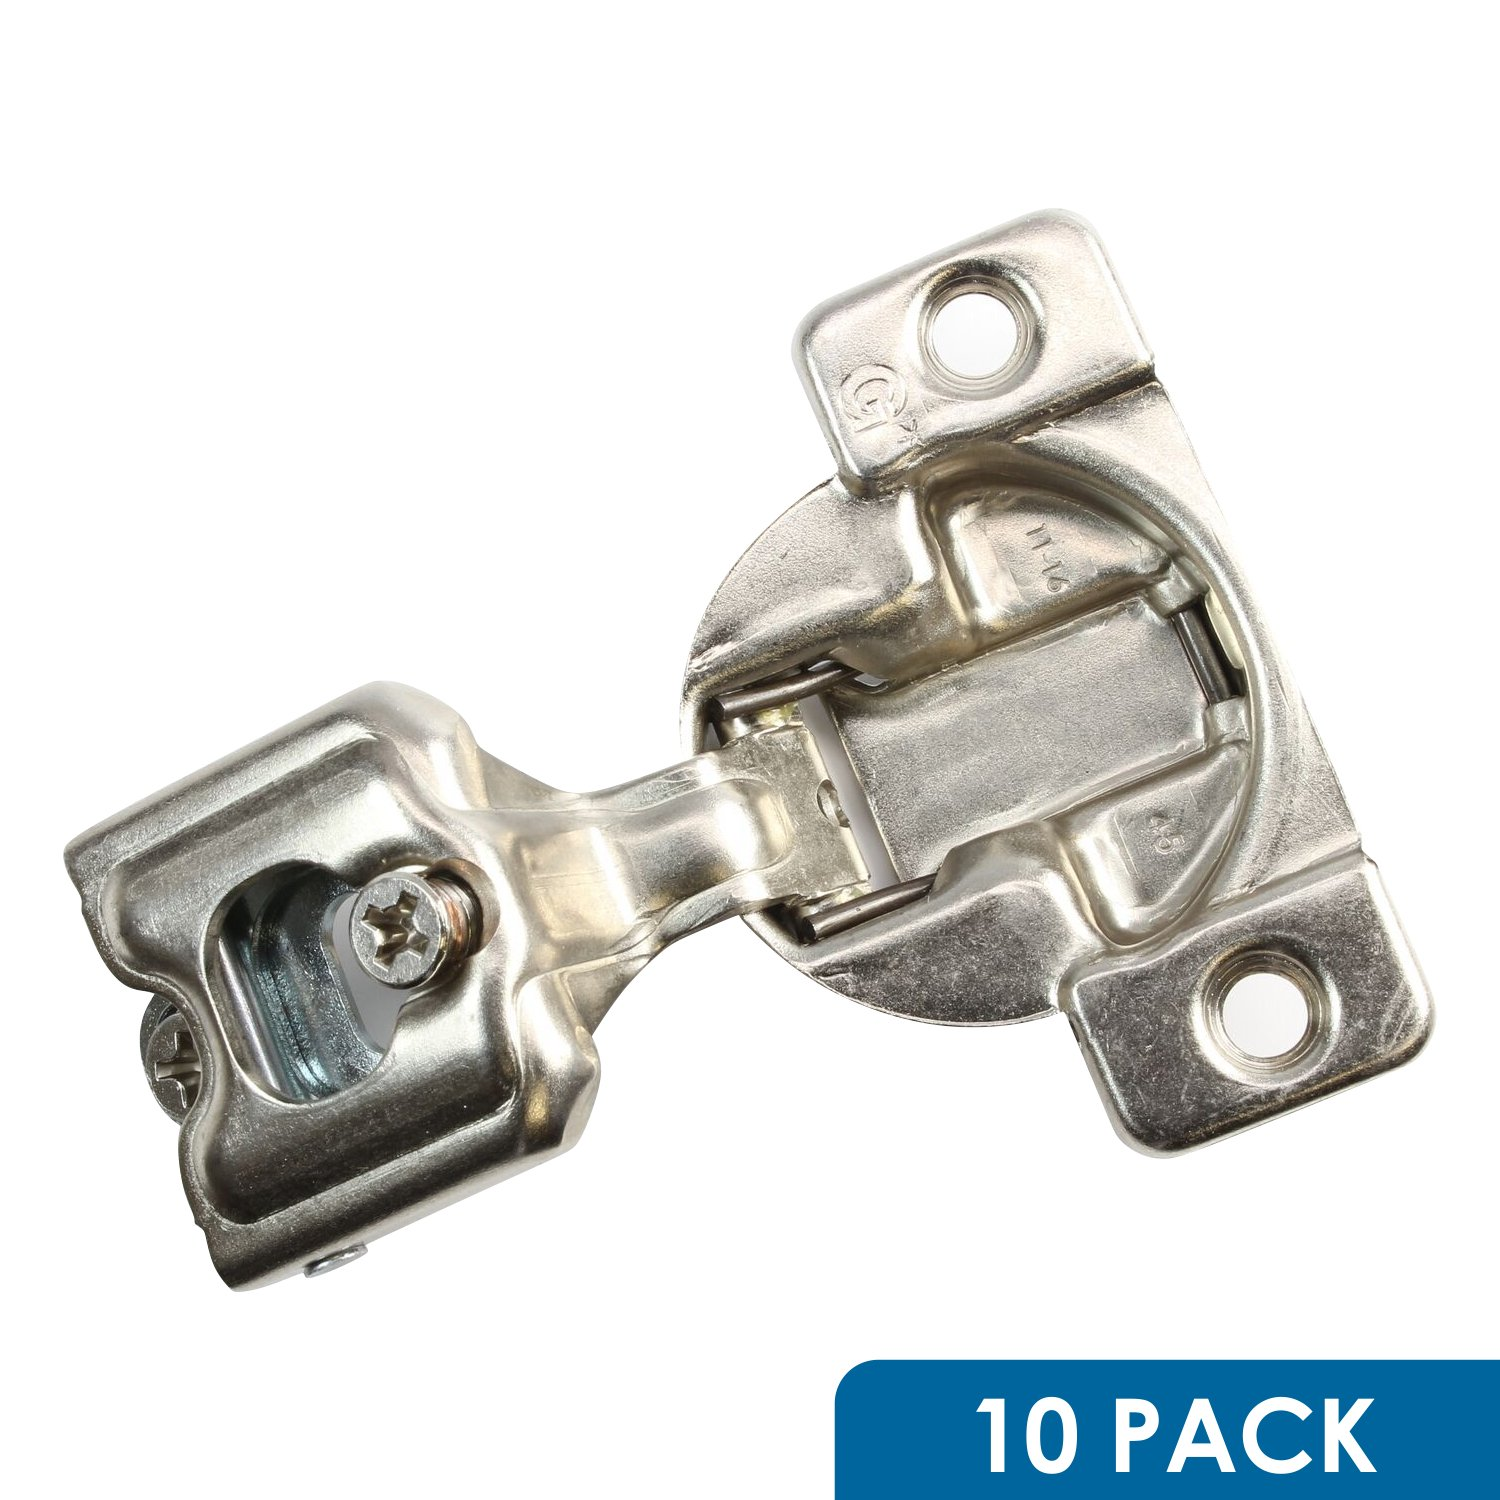 10 Pack Rok Hardware Grass TEC 864 108 Degree 1'' Overlay 3 Level Self Close Screw On Compact Cabinet Hinge 04401-15 3-Way Adjustment 45mm Boring Pattern